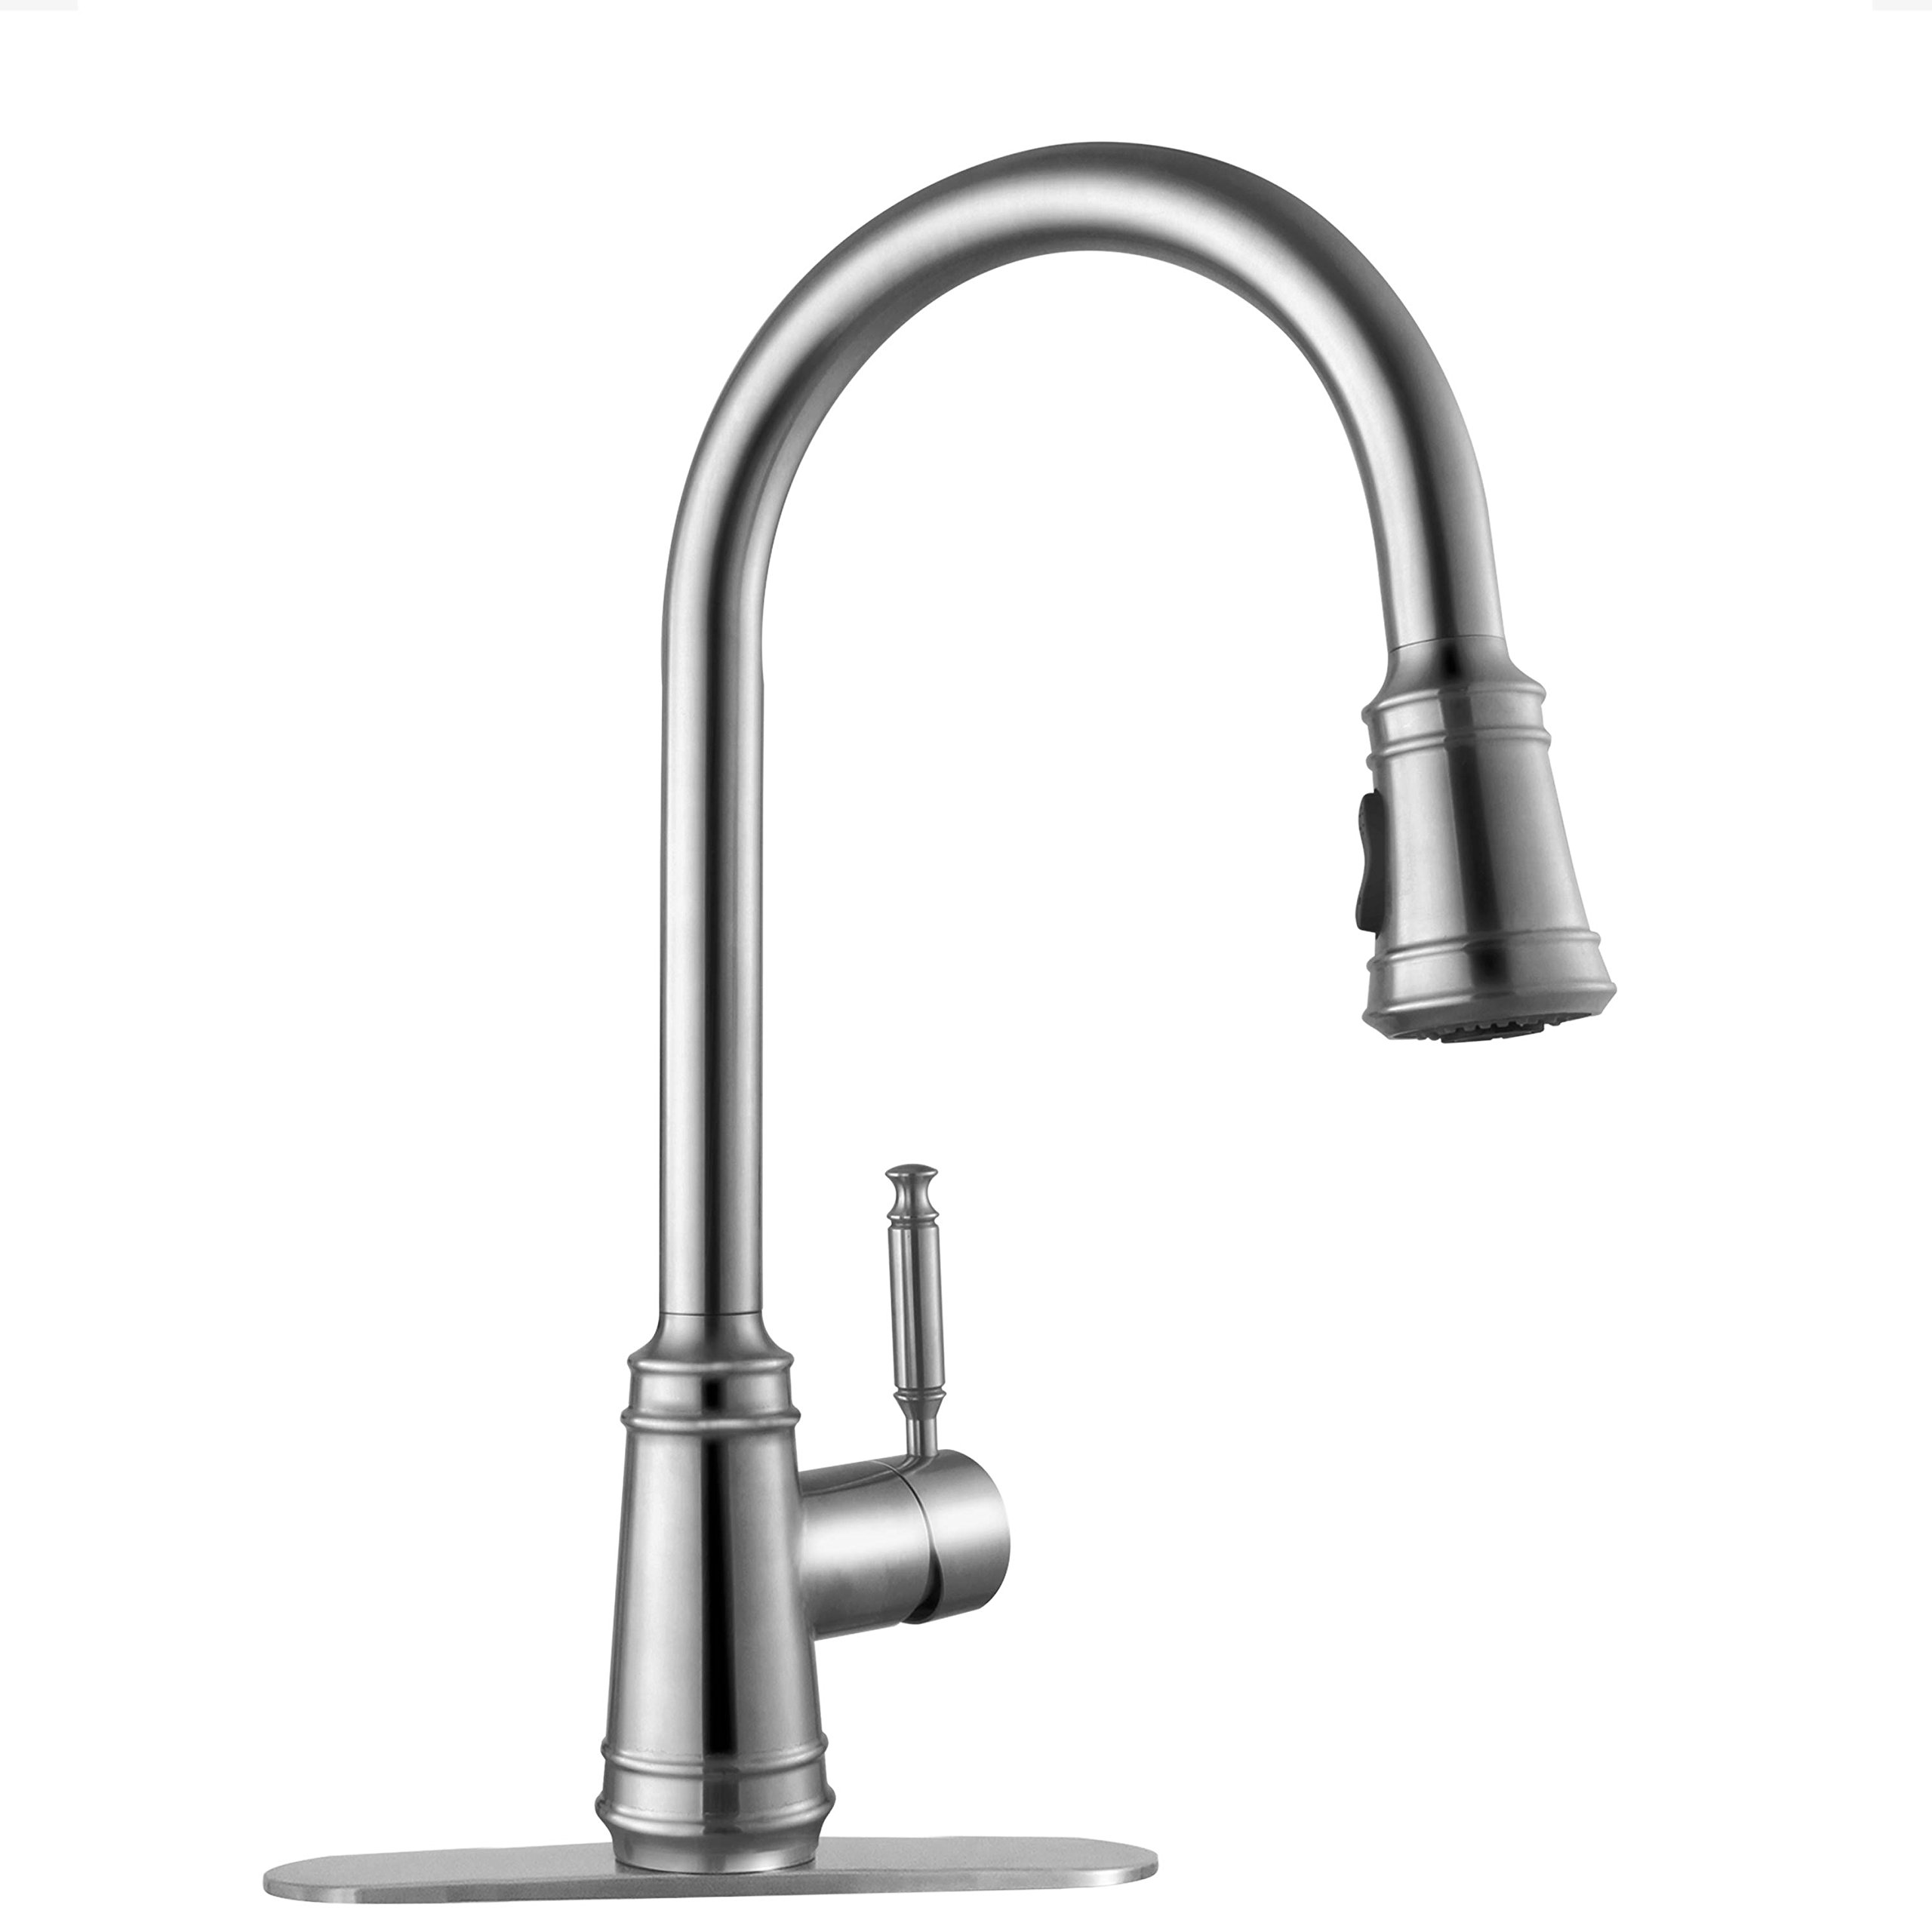 beverage full size filters marvelous purifier water marveloused kitchen faucetsater comparison mount the pur faucet purified home picture depot delta design of by faucets designer